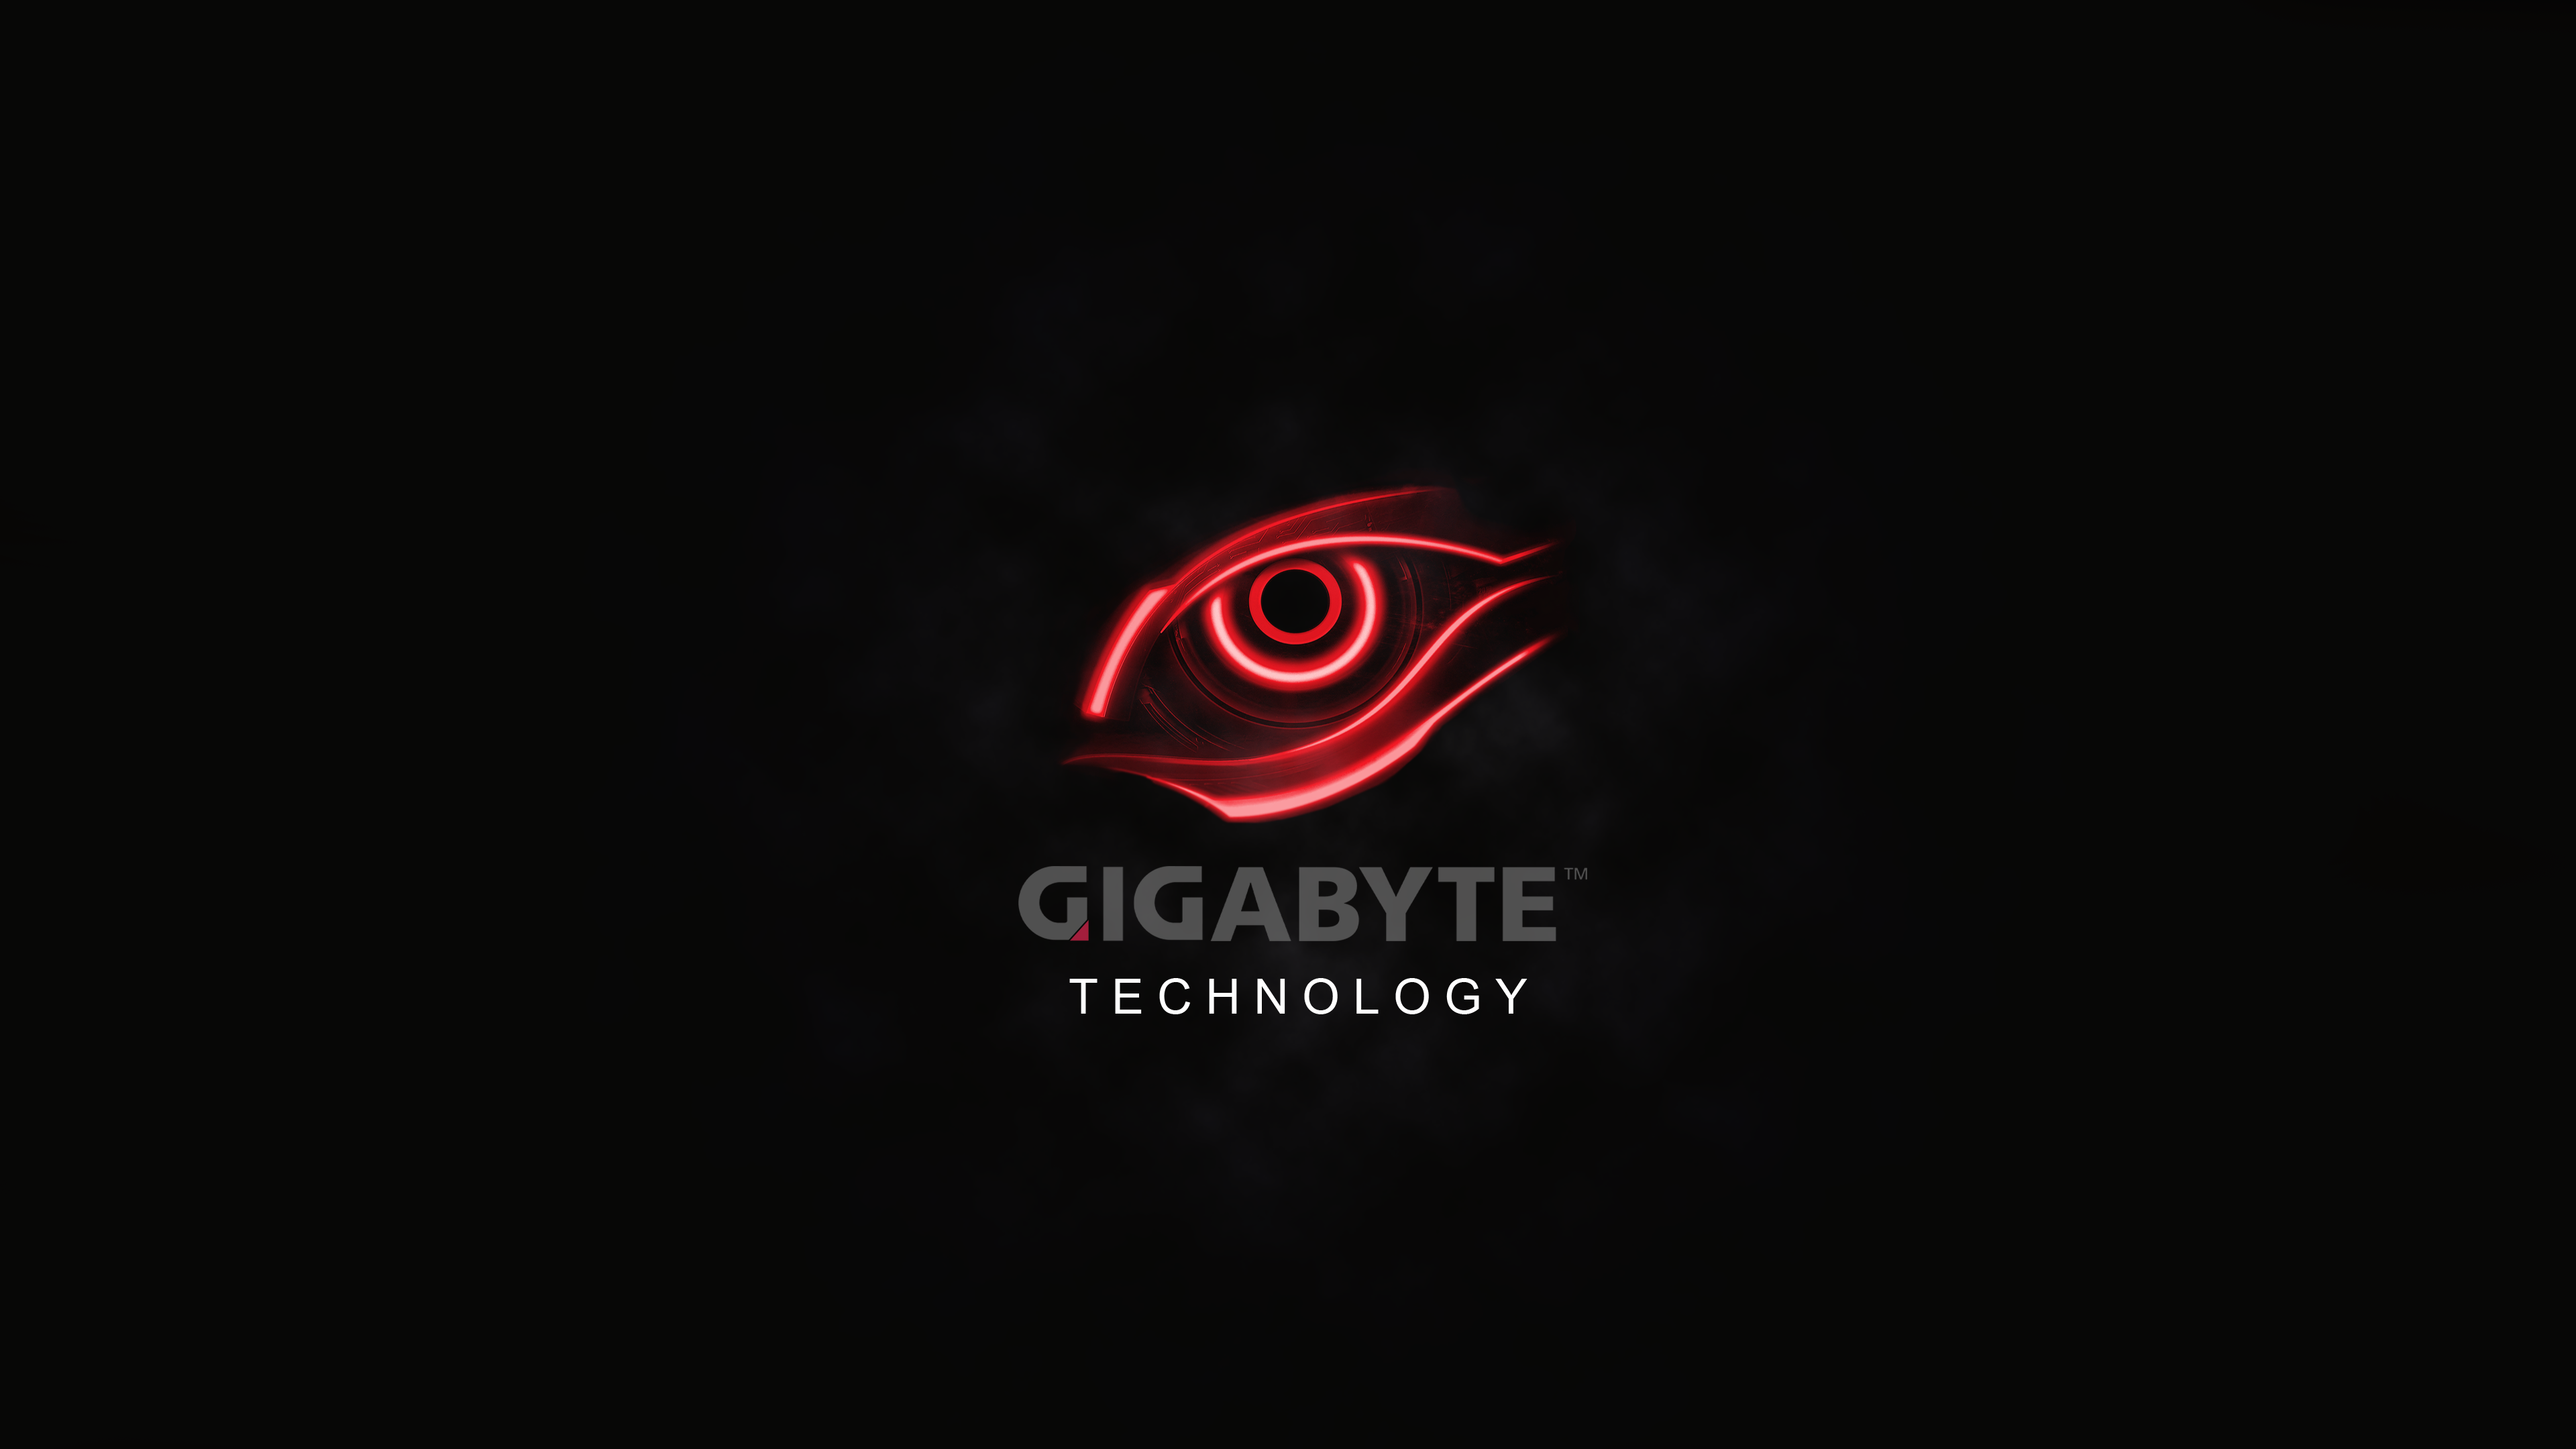 Gigabyte Officially Launches Two New Skus One Is The Gtx